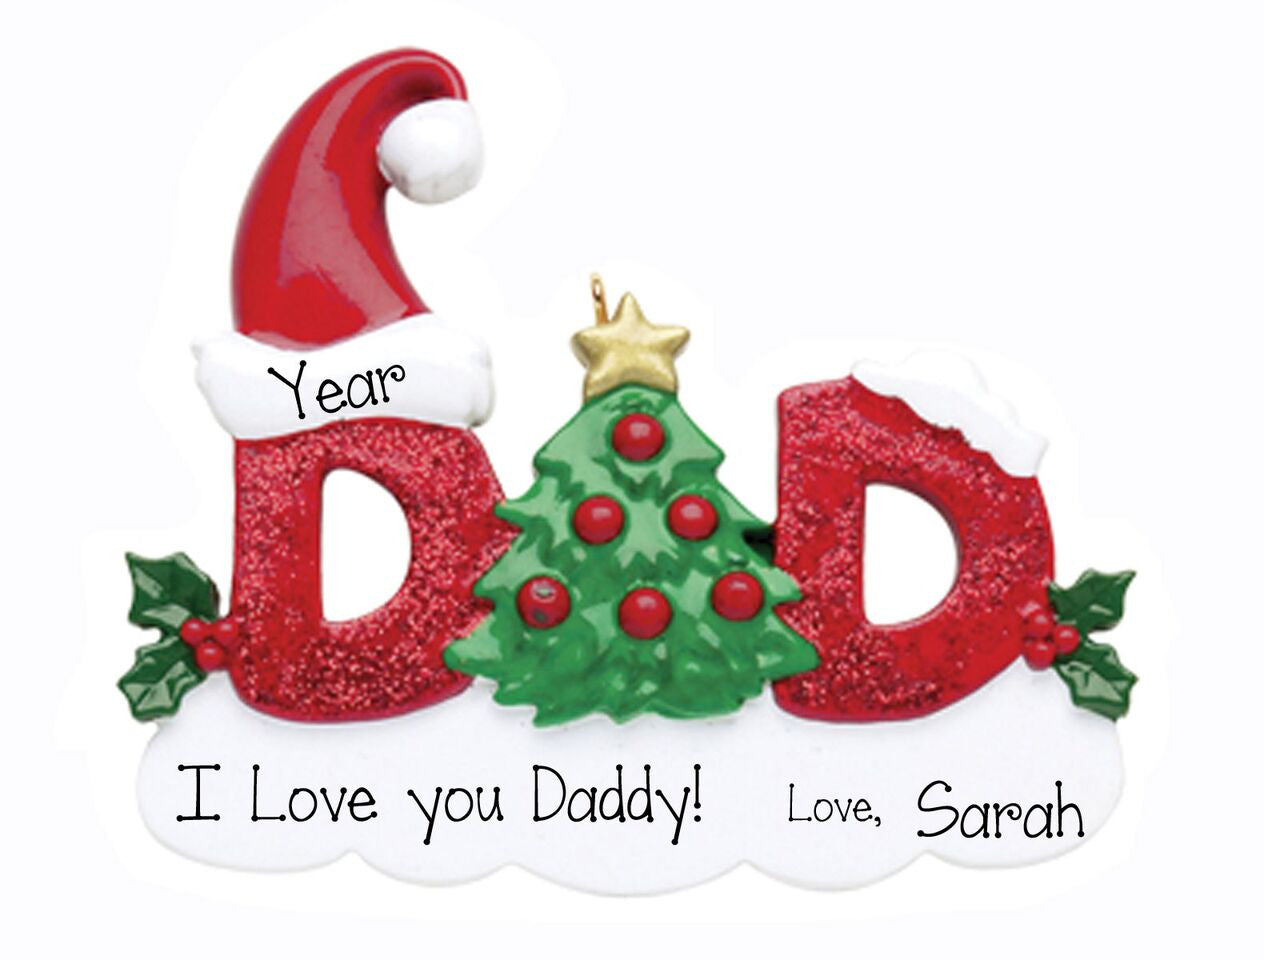 Dad My Personalized Ornaments